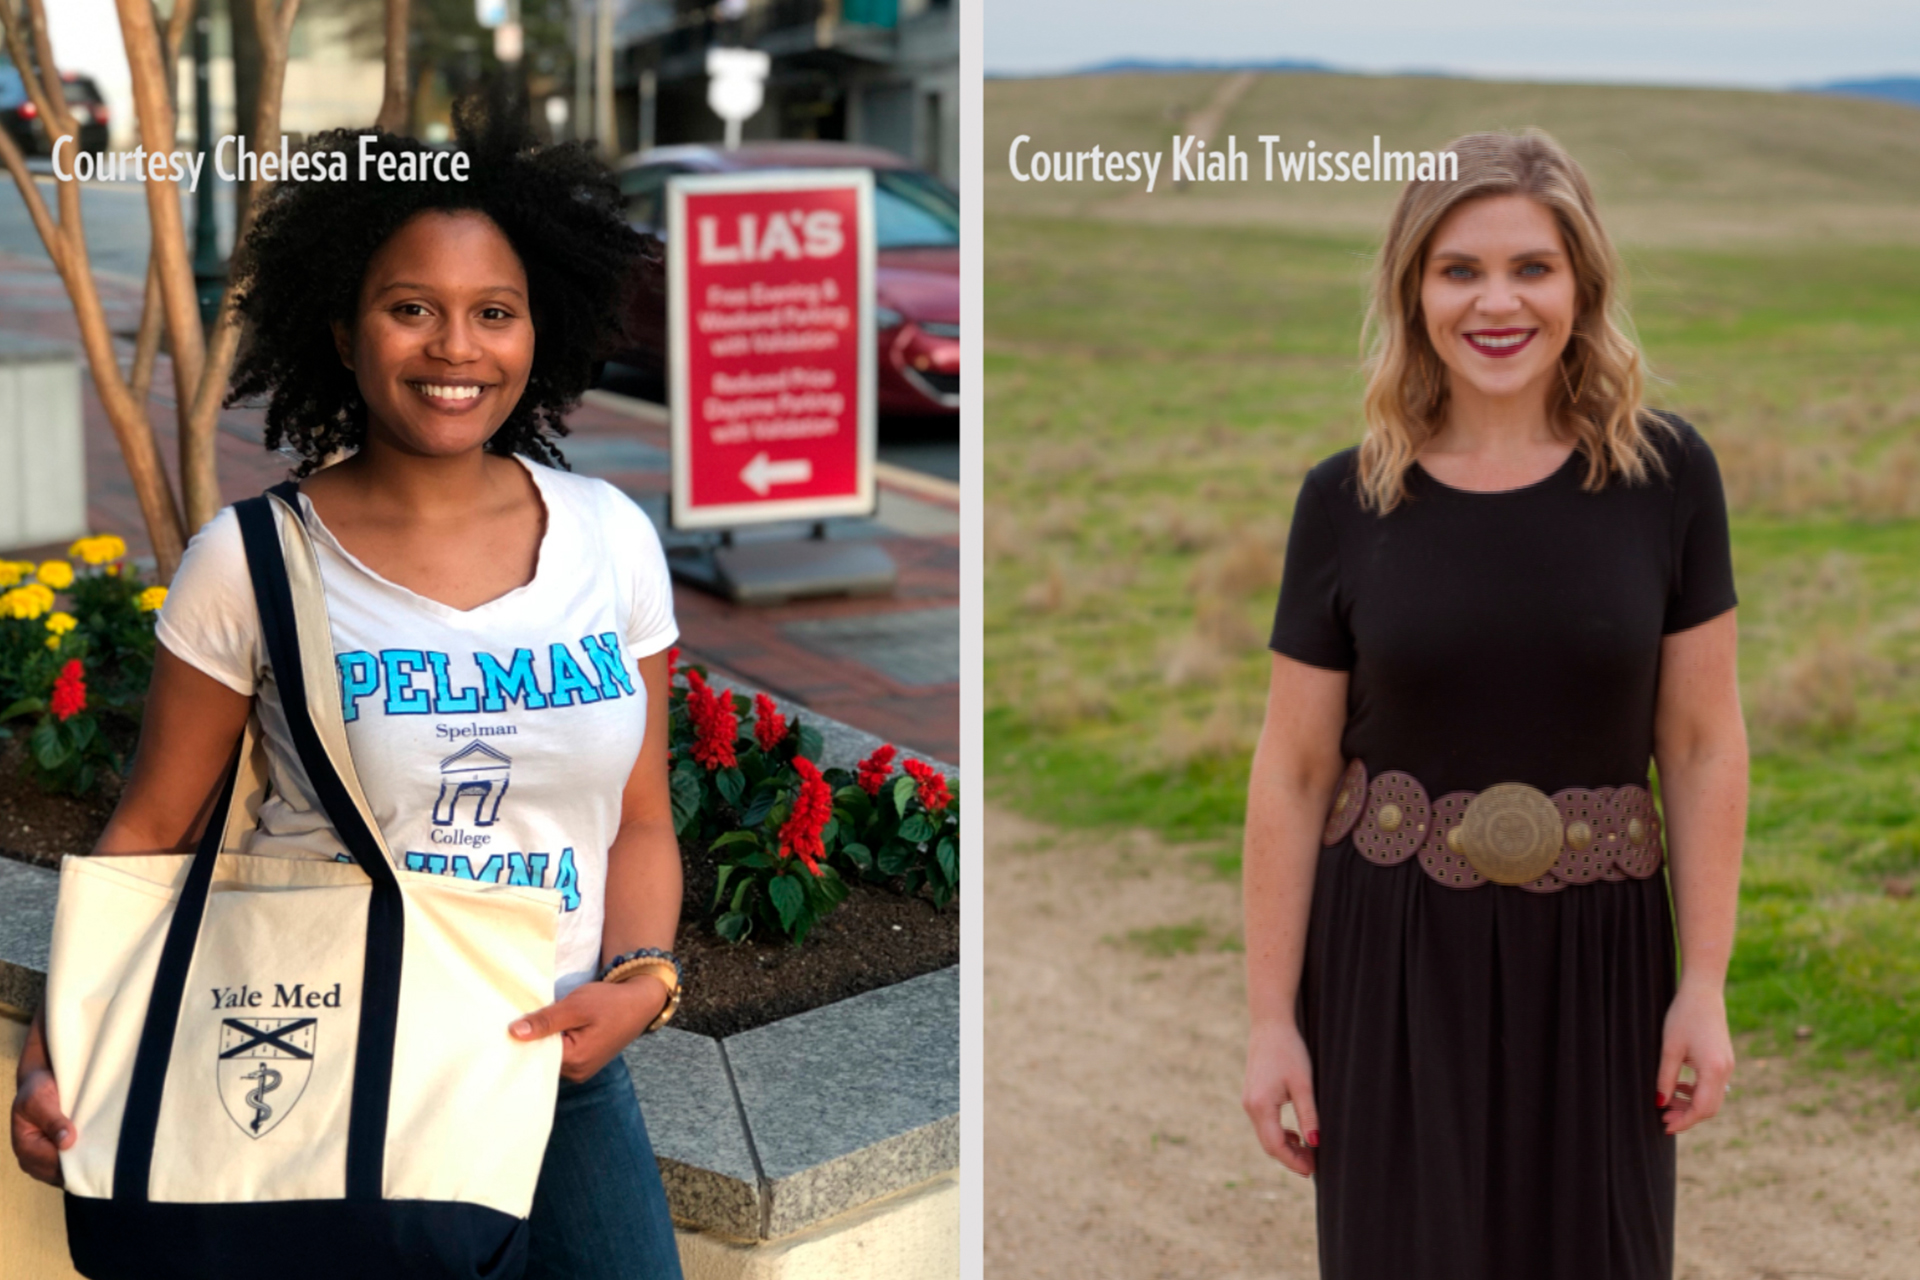 People Now: From Overcoming Homelessness to Losing 100+ Lbs.: Meet Two Women Who Transformed Their Lives - Watch the Full Episode